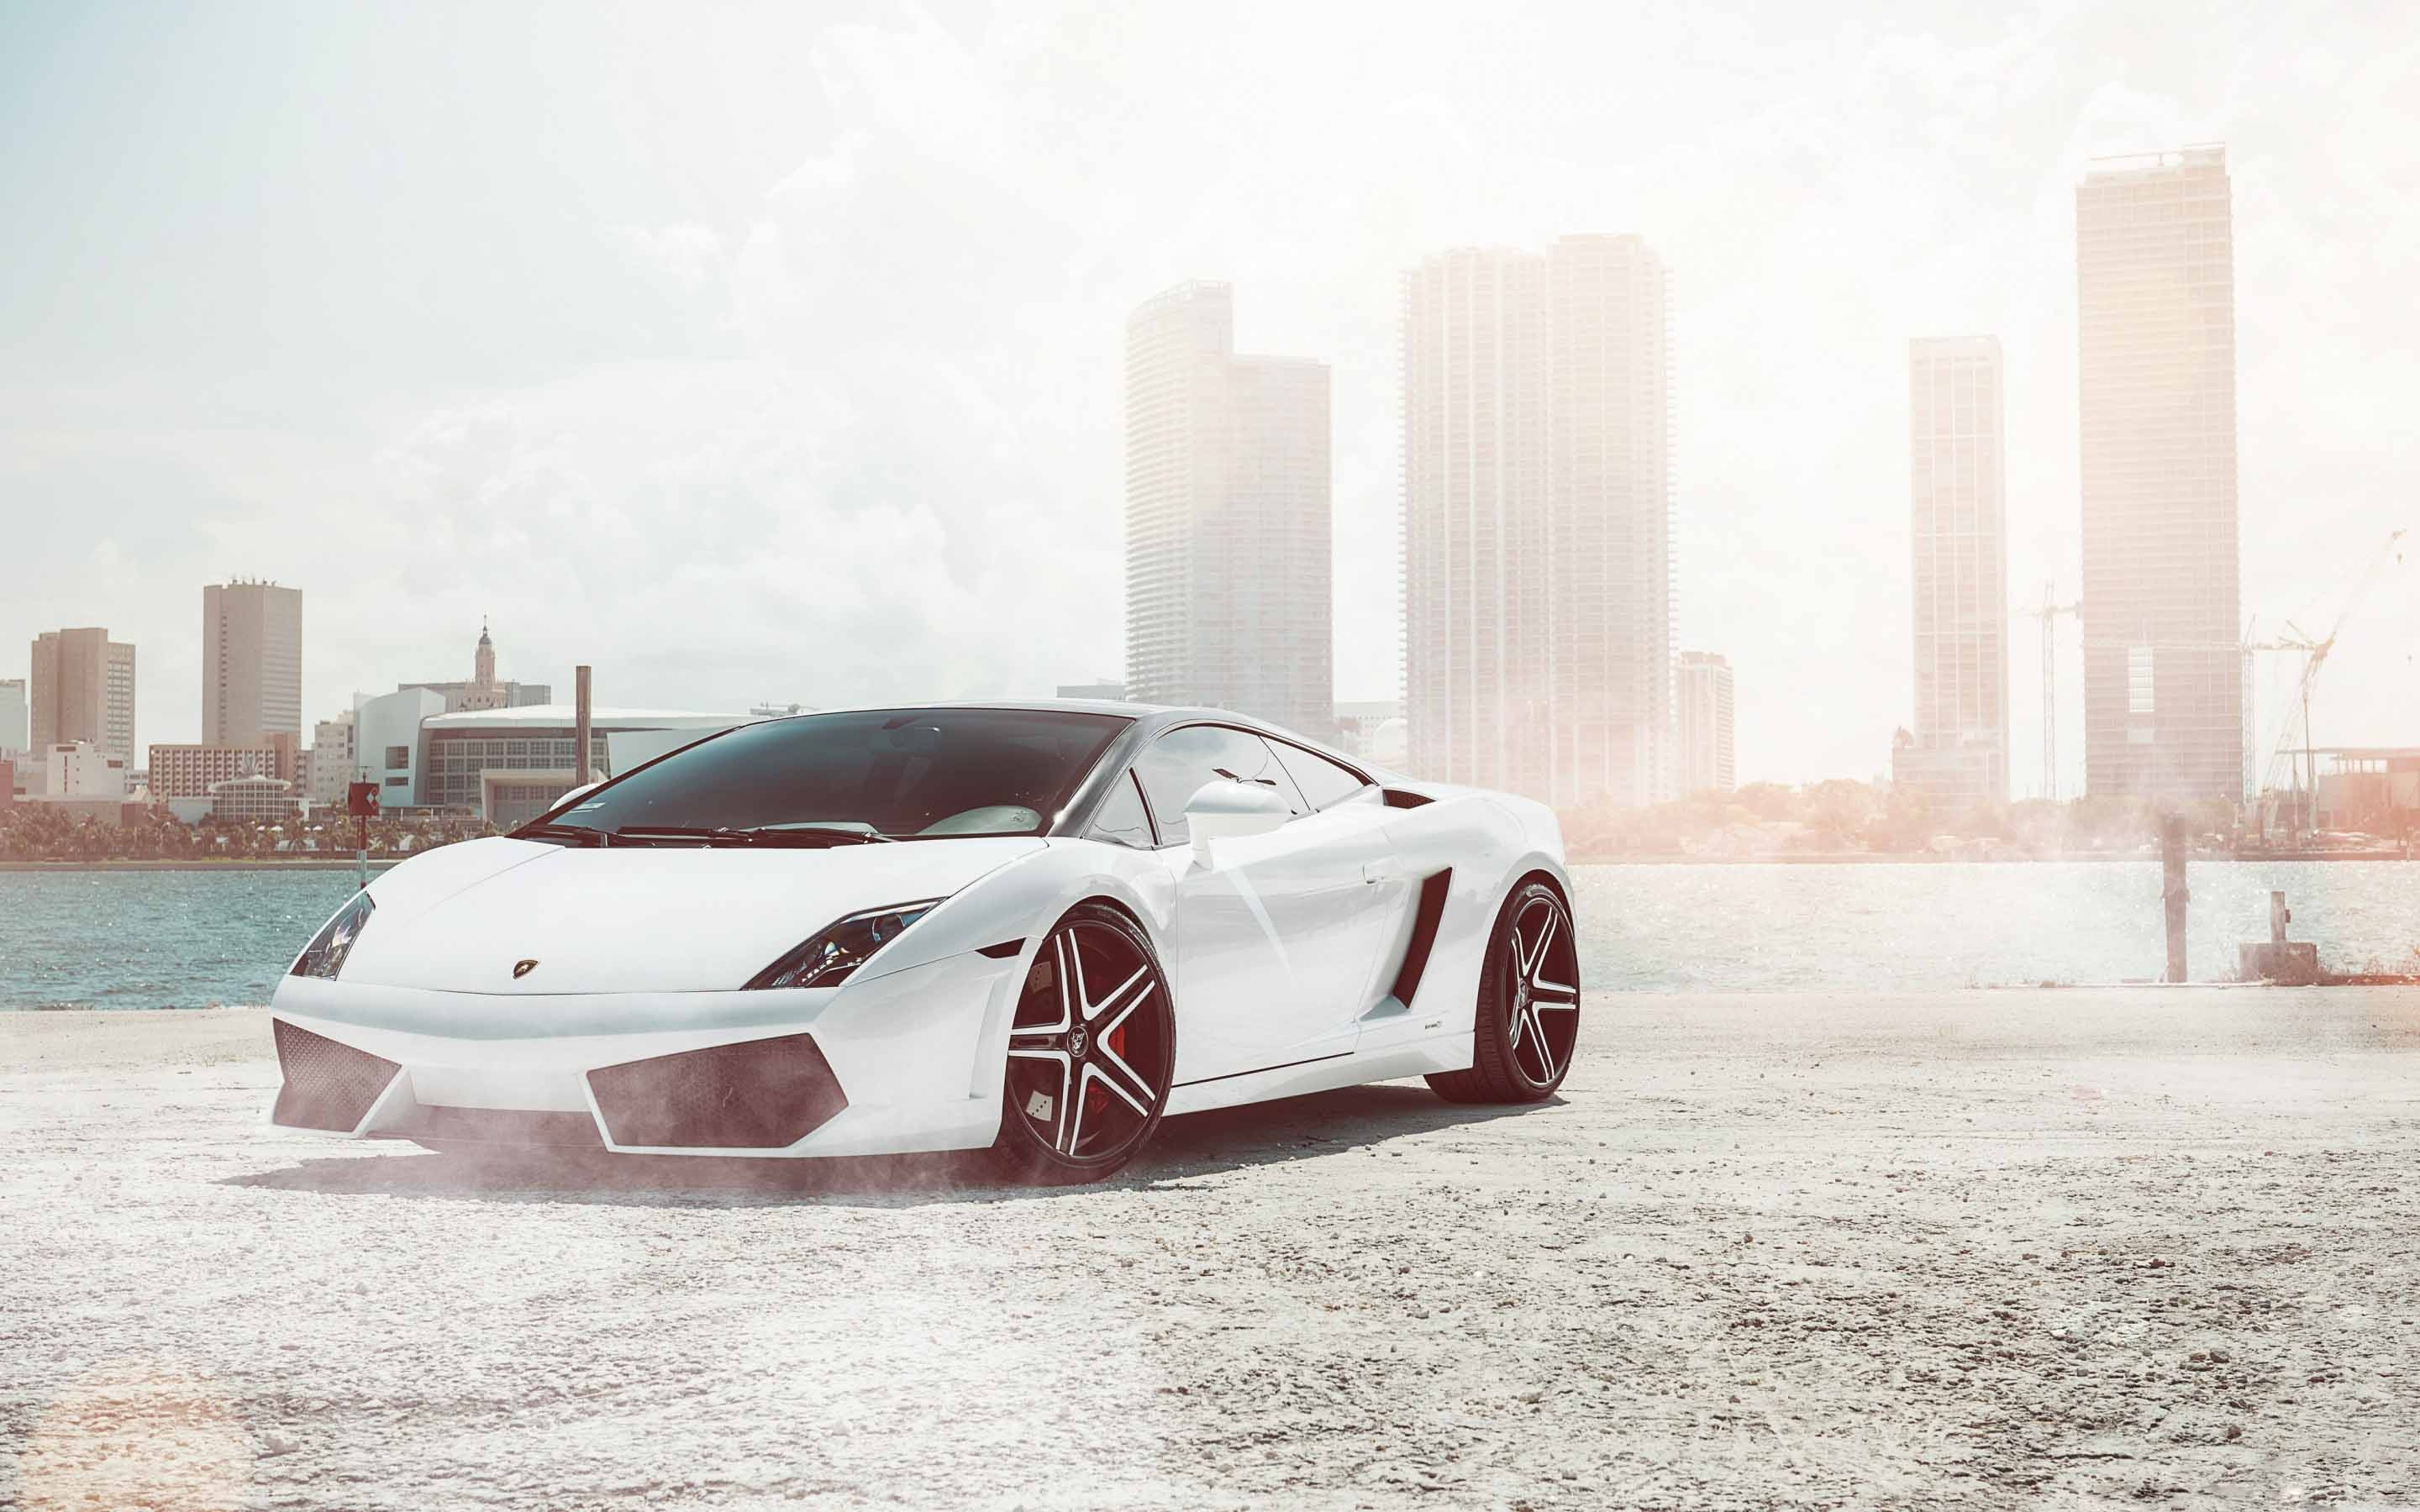 Lamborghini Gallardo Supercar Mac Wallpaper Download